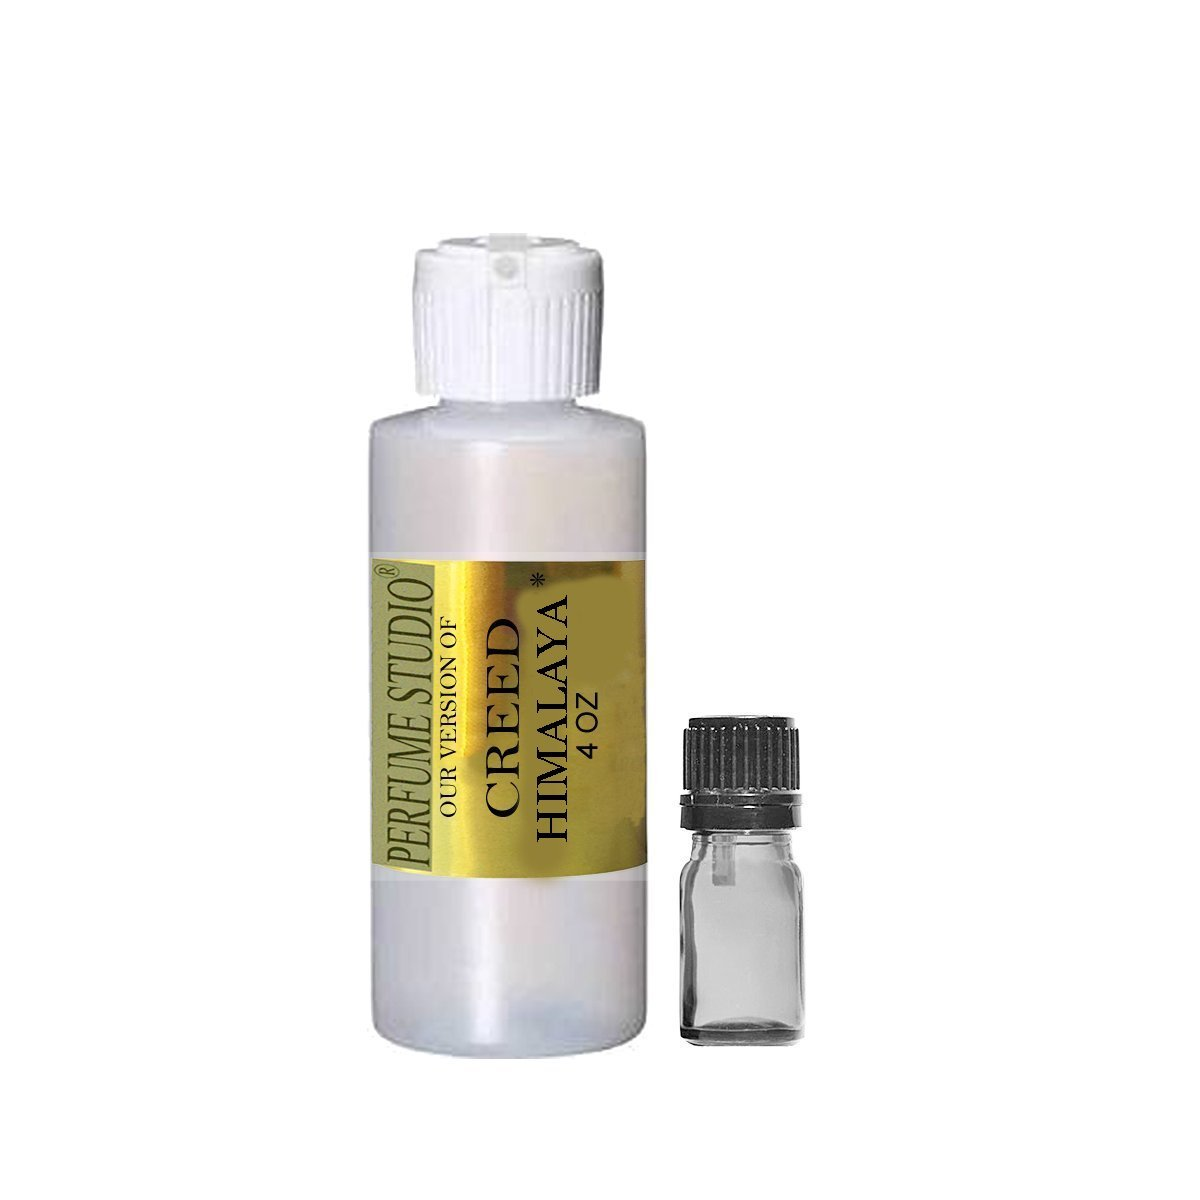 Premium IMPRESSION Perfume Oil Wholesale, SIMILAR Fragrance Accords to Famous Designer Brands - 100% Pure Undiluted, No Alcohol, Free 5ml Empty Glass Euro Dropper (CREED HIMALAYA IMPRESSION, 4OZ)